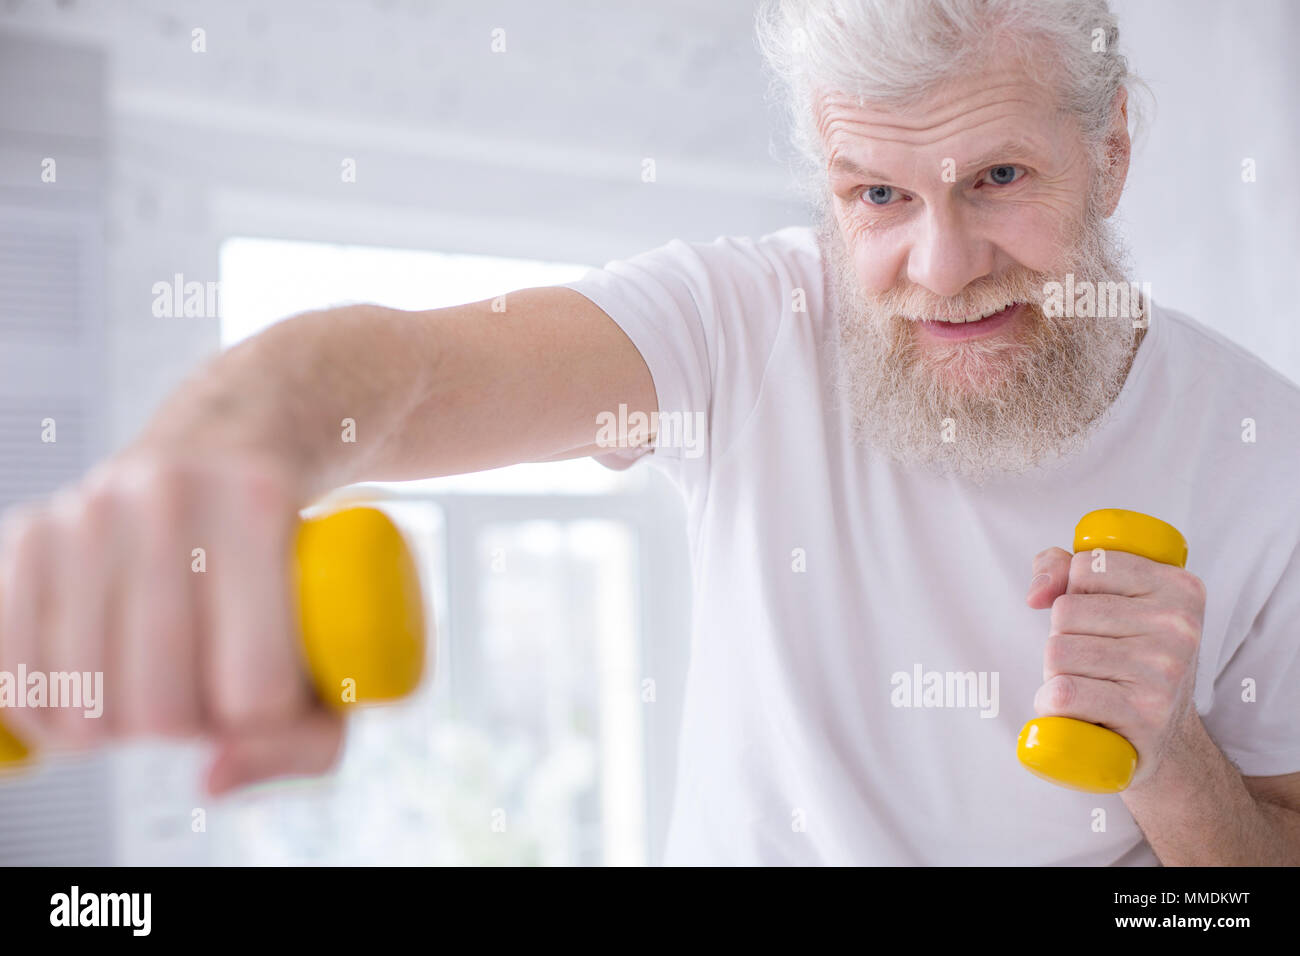 Close up of senior man working out with dumbbells - Stock Image